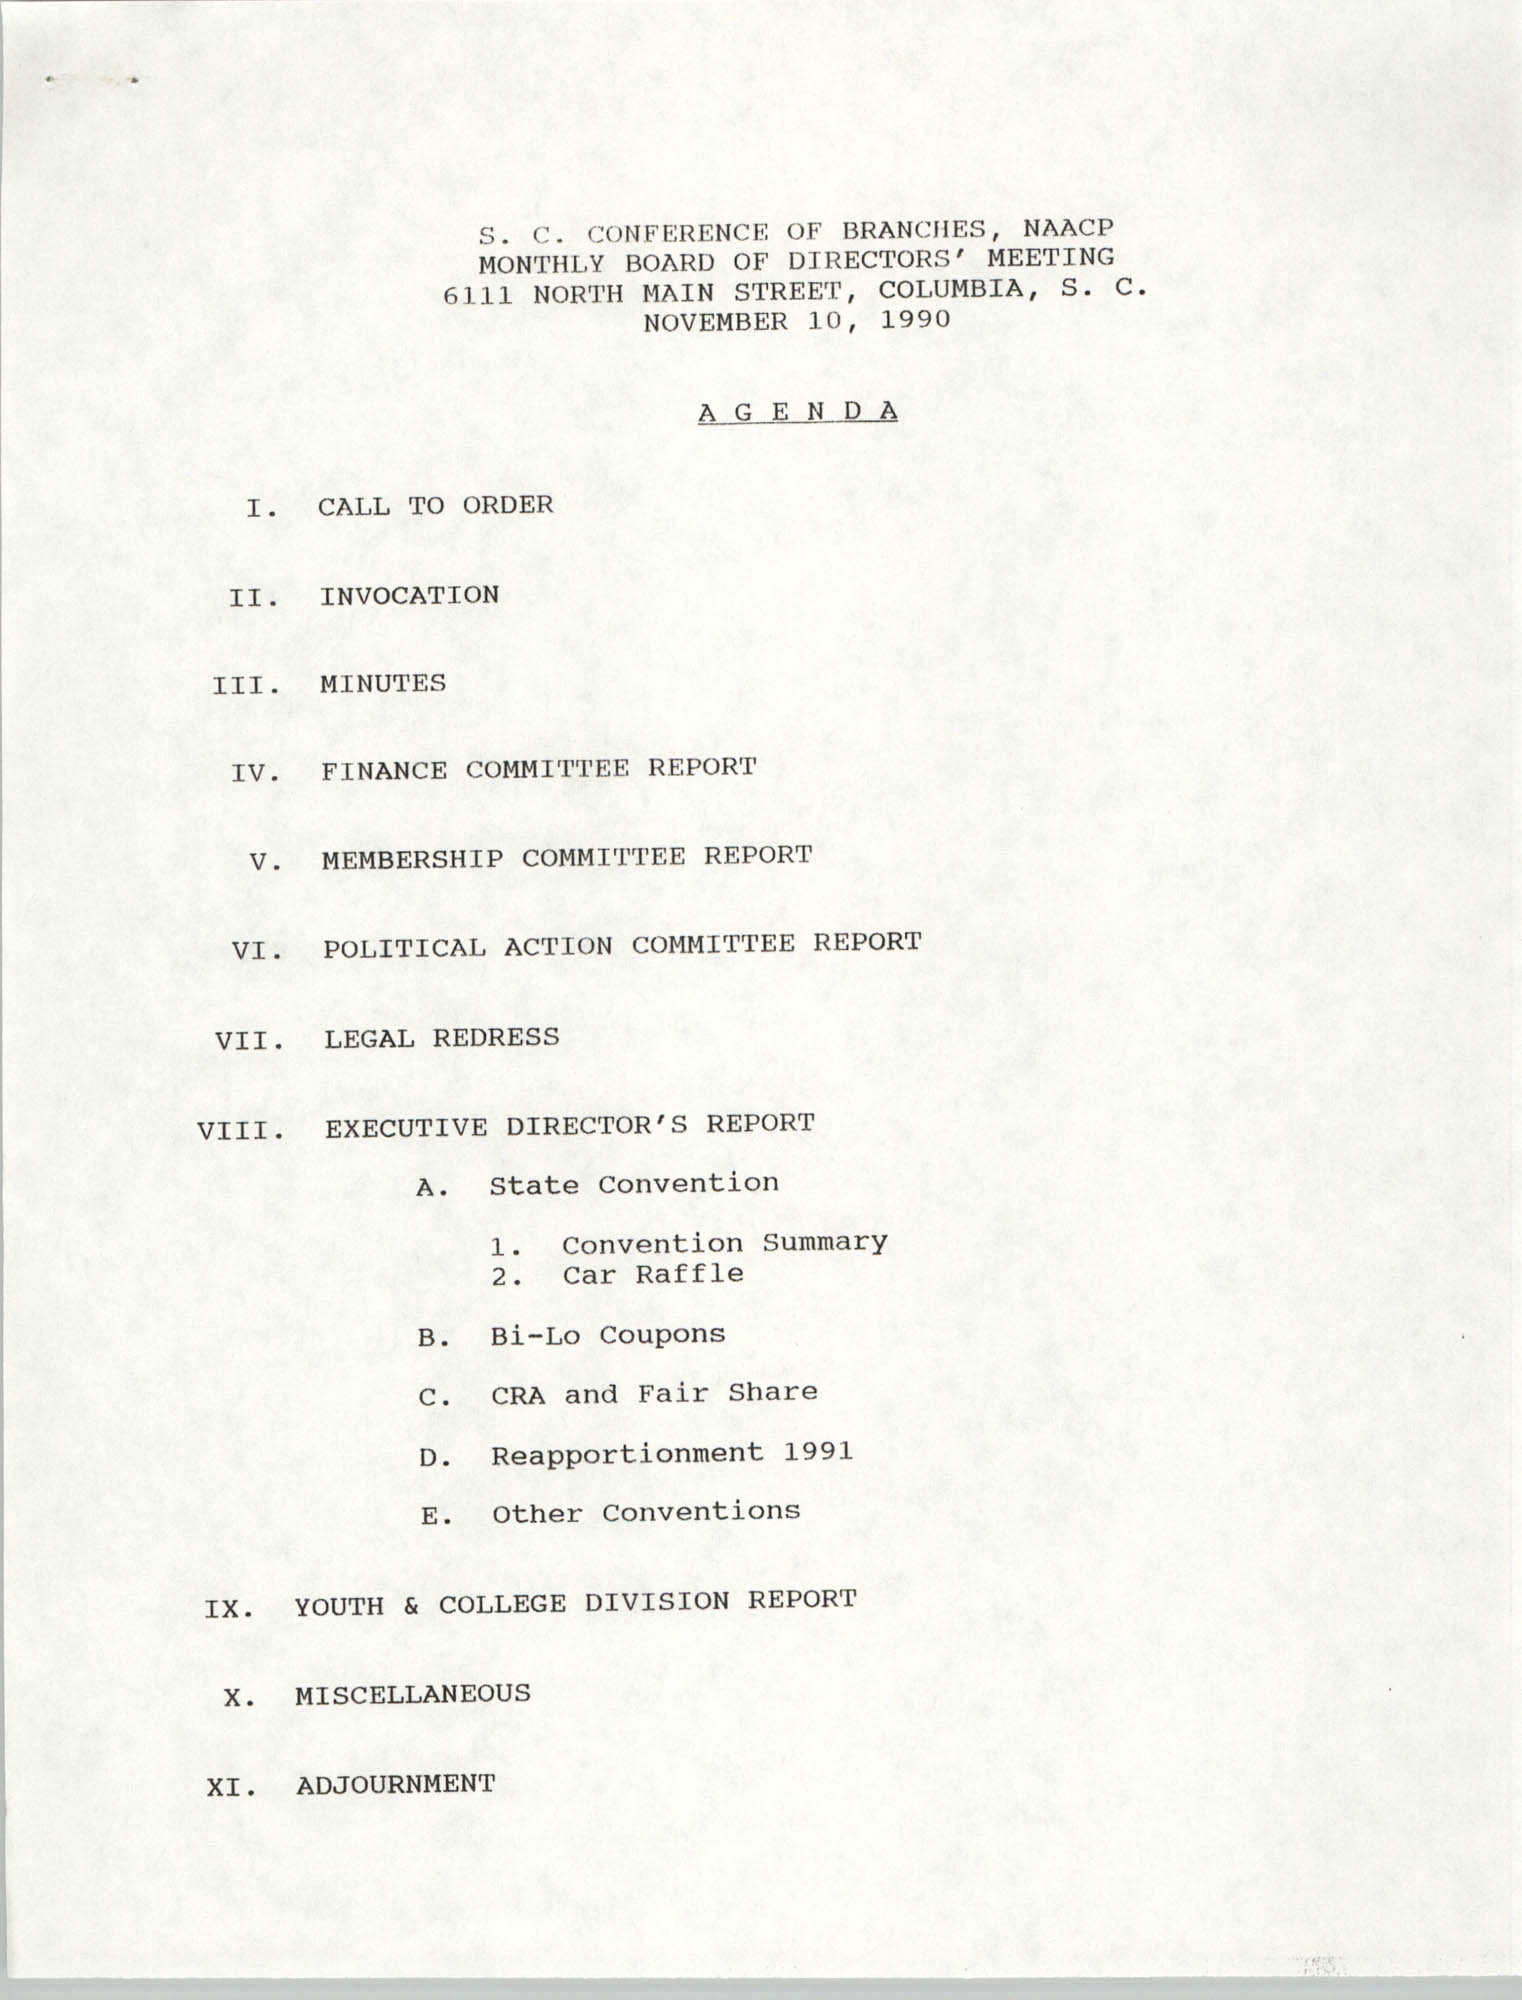 Agenda, South Carolina Conference of Branches of the NAACP, November 10, 1990